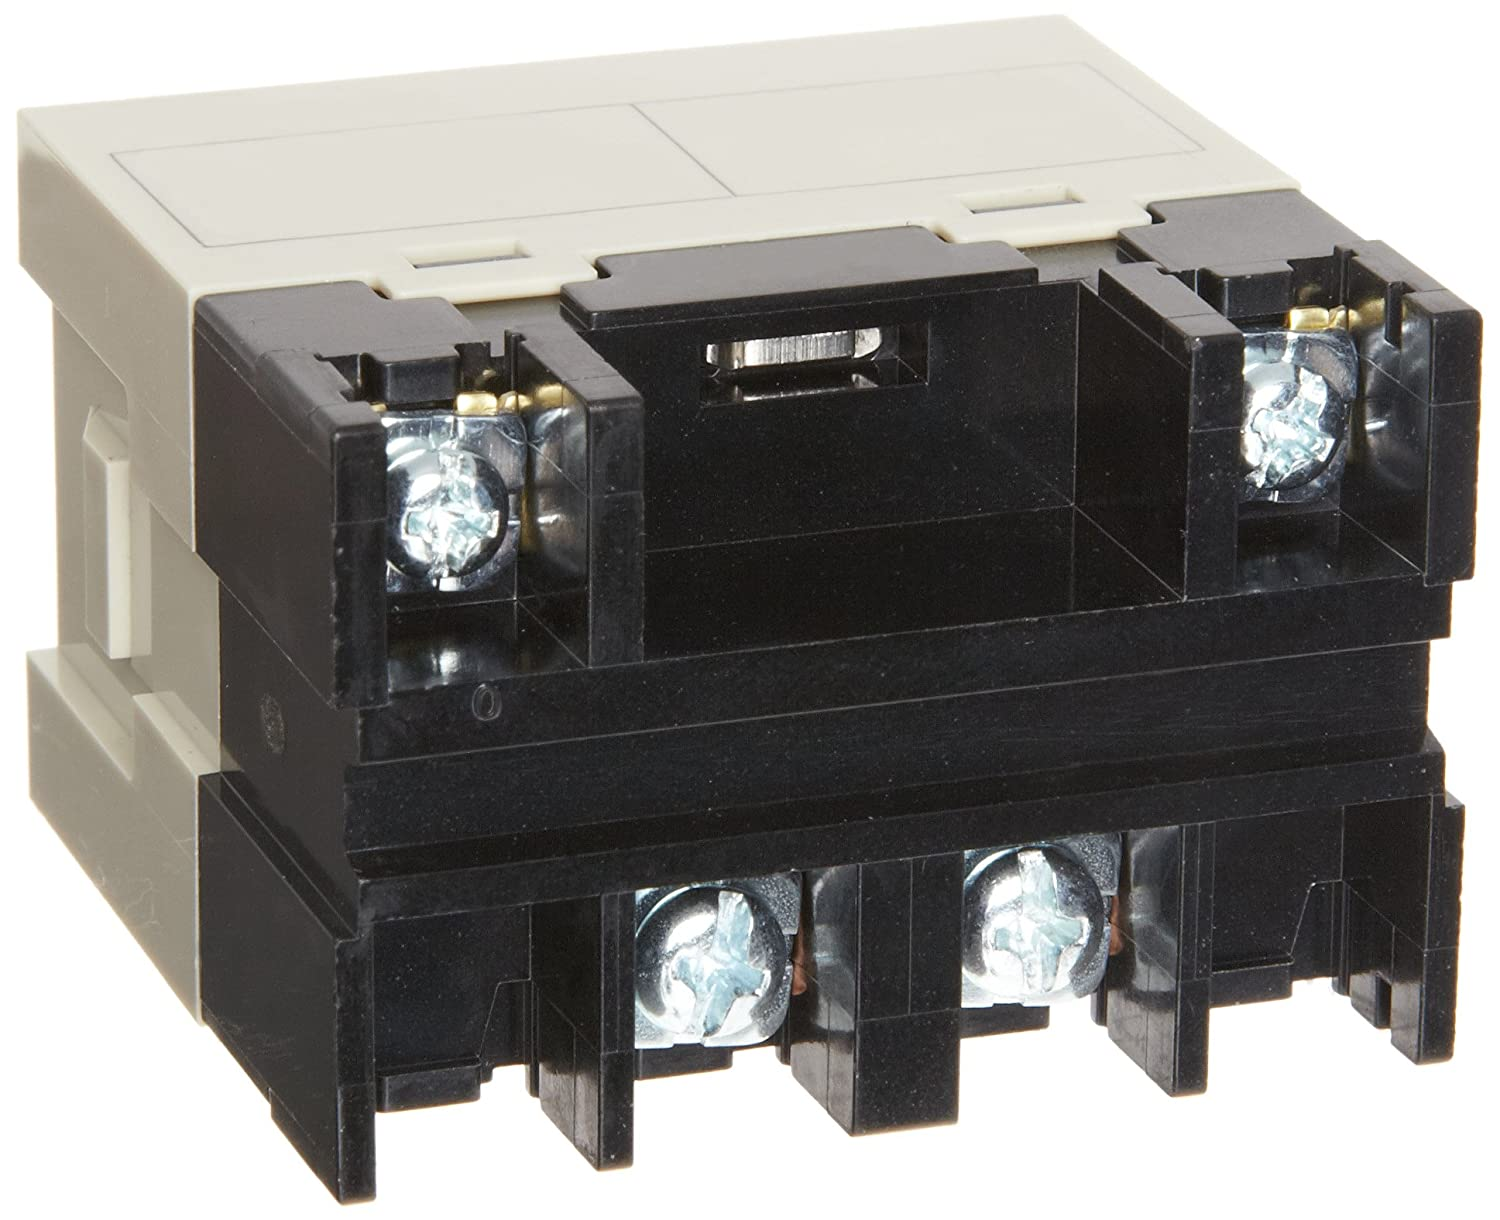 Double Pole Single Throw Normally Open Contacts Screw Terminal 8.5 to 10.2 mA Rated Load Current Omron G7L-2A-BJ AC200//240 General Purpose Relay With Test Button E Bracket Mounting 200 to 240 VAC Rated Load Voltage